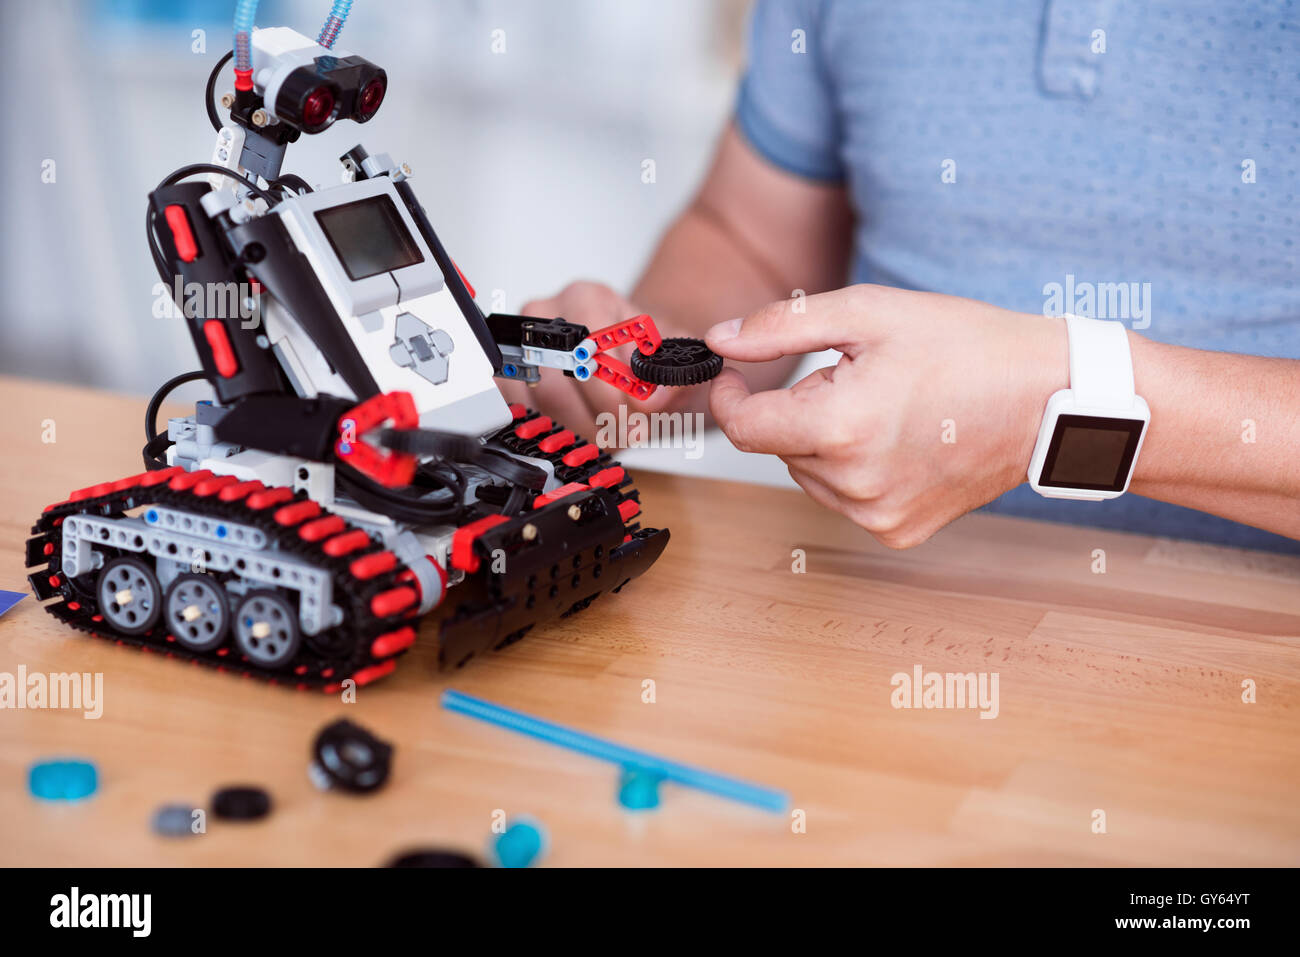 Pleasant man constructing robot. - Stock Image